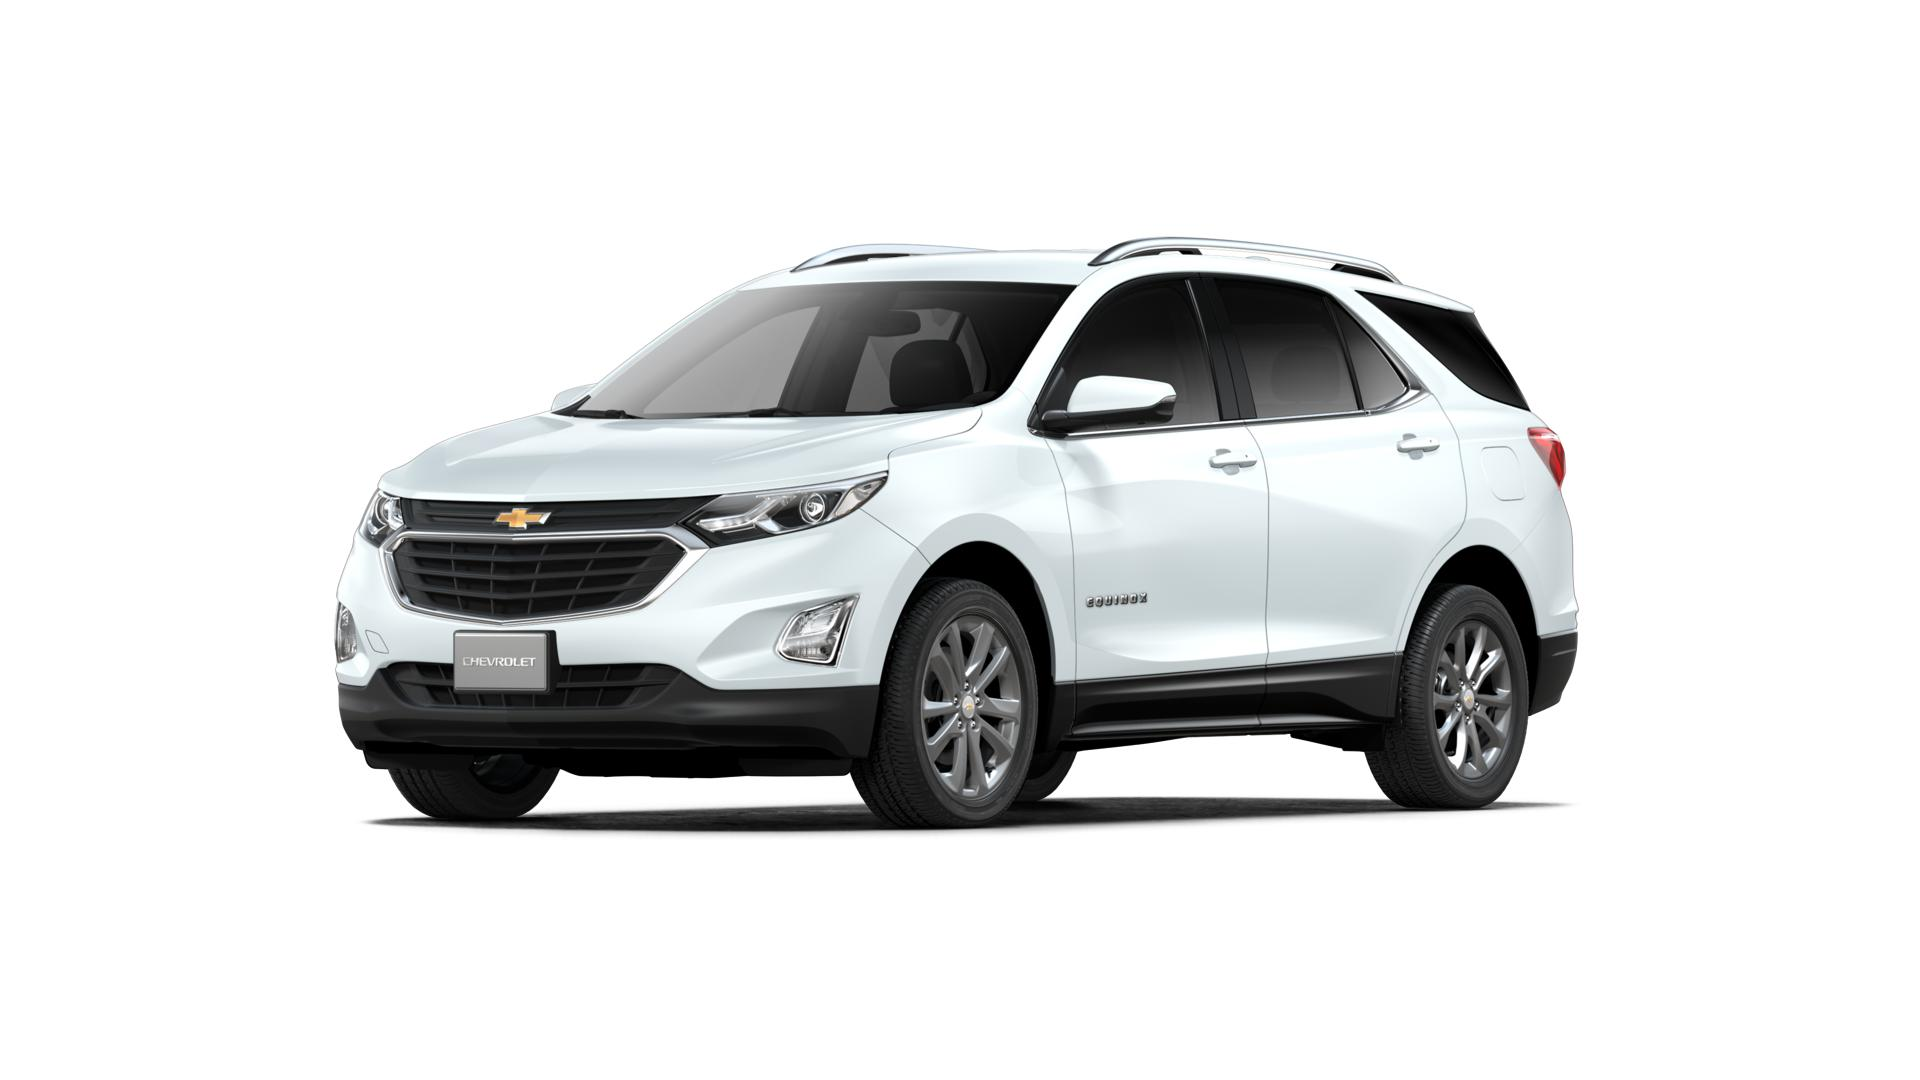 CHEVROLET EQUINOX LT TURBO 2.0L TURBO 2019